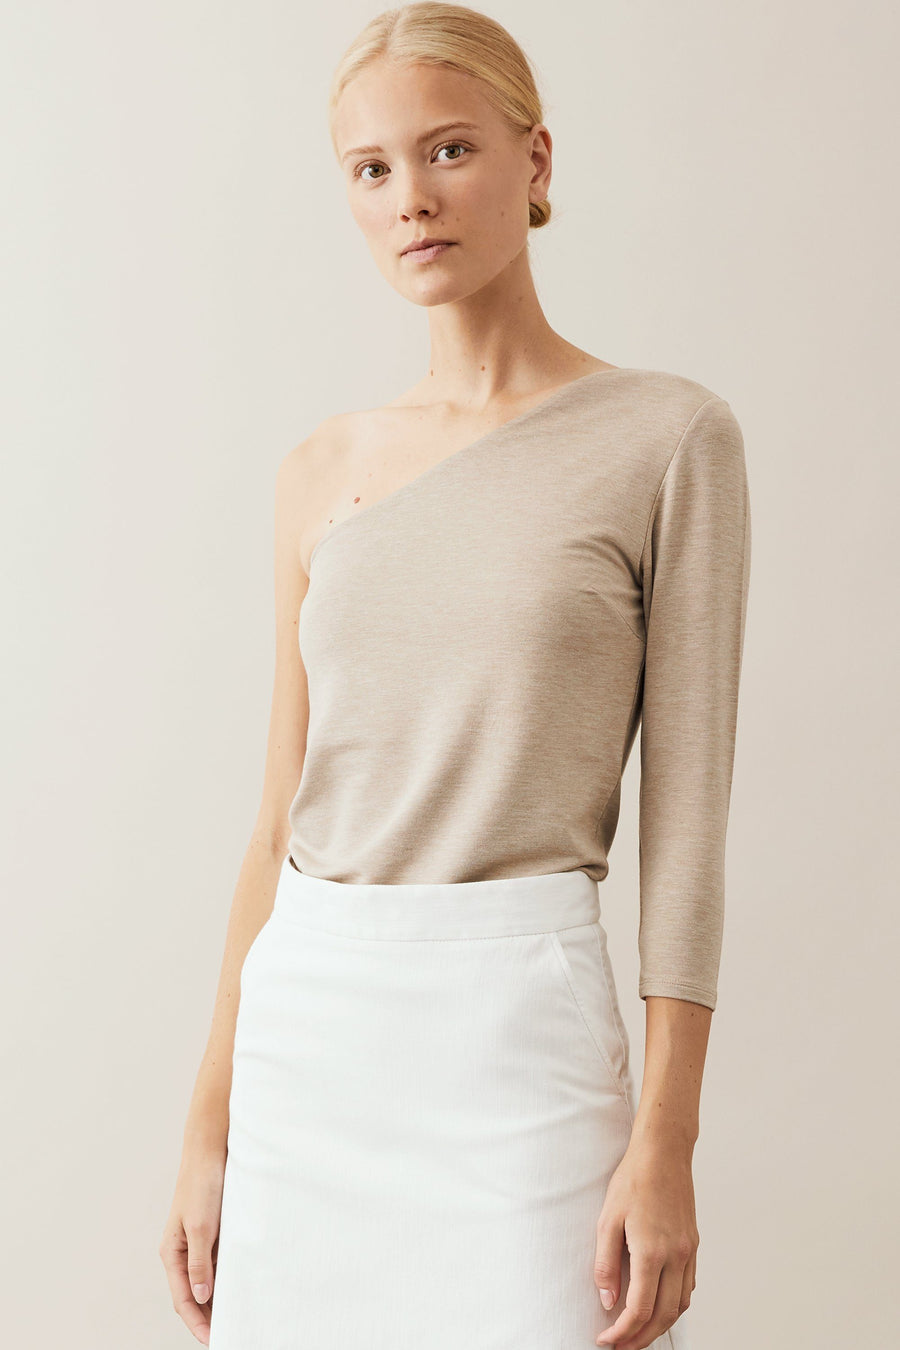 ENNA SWEATER - WHITE